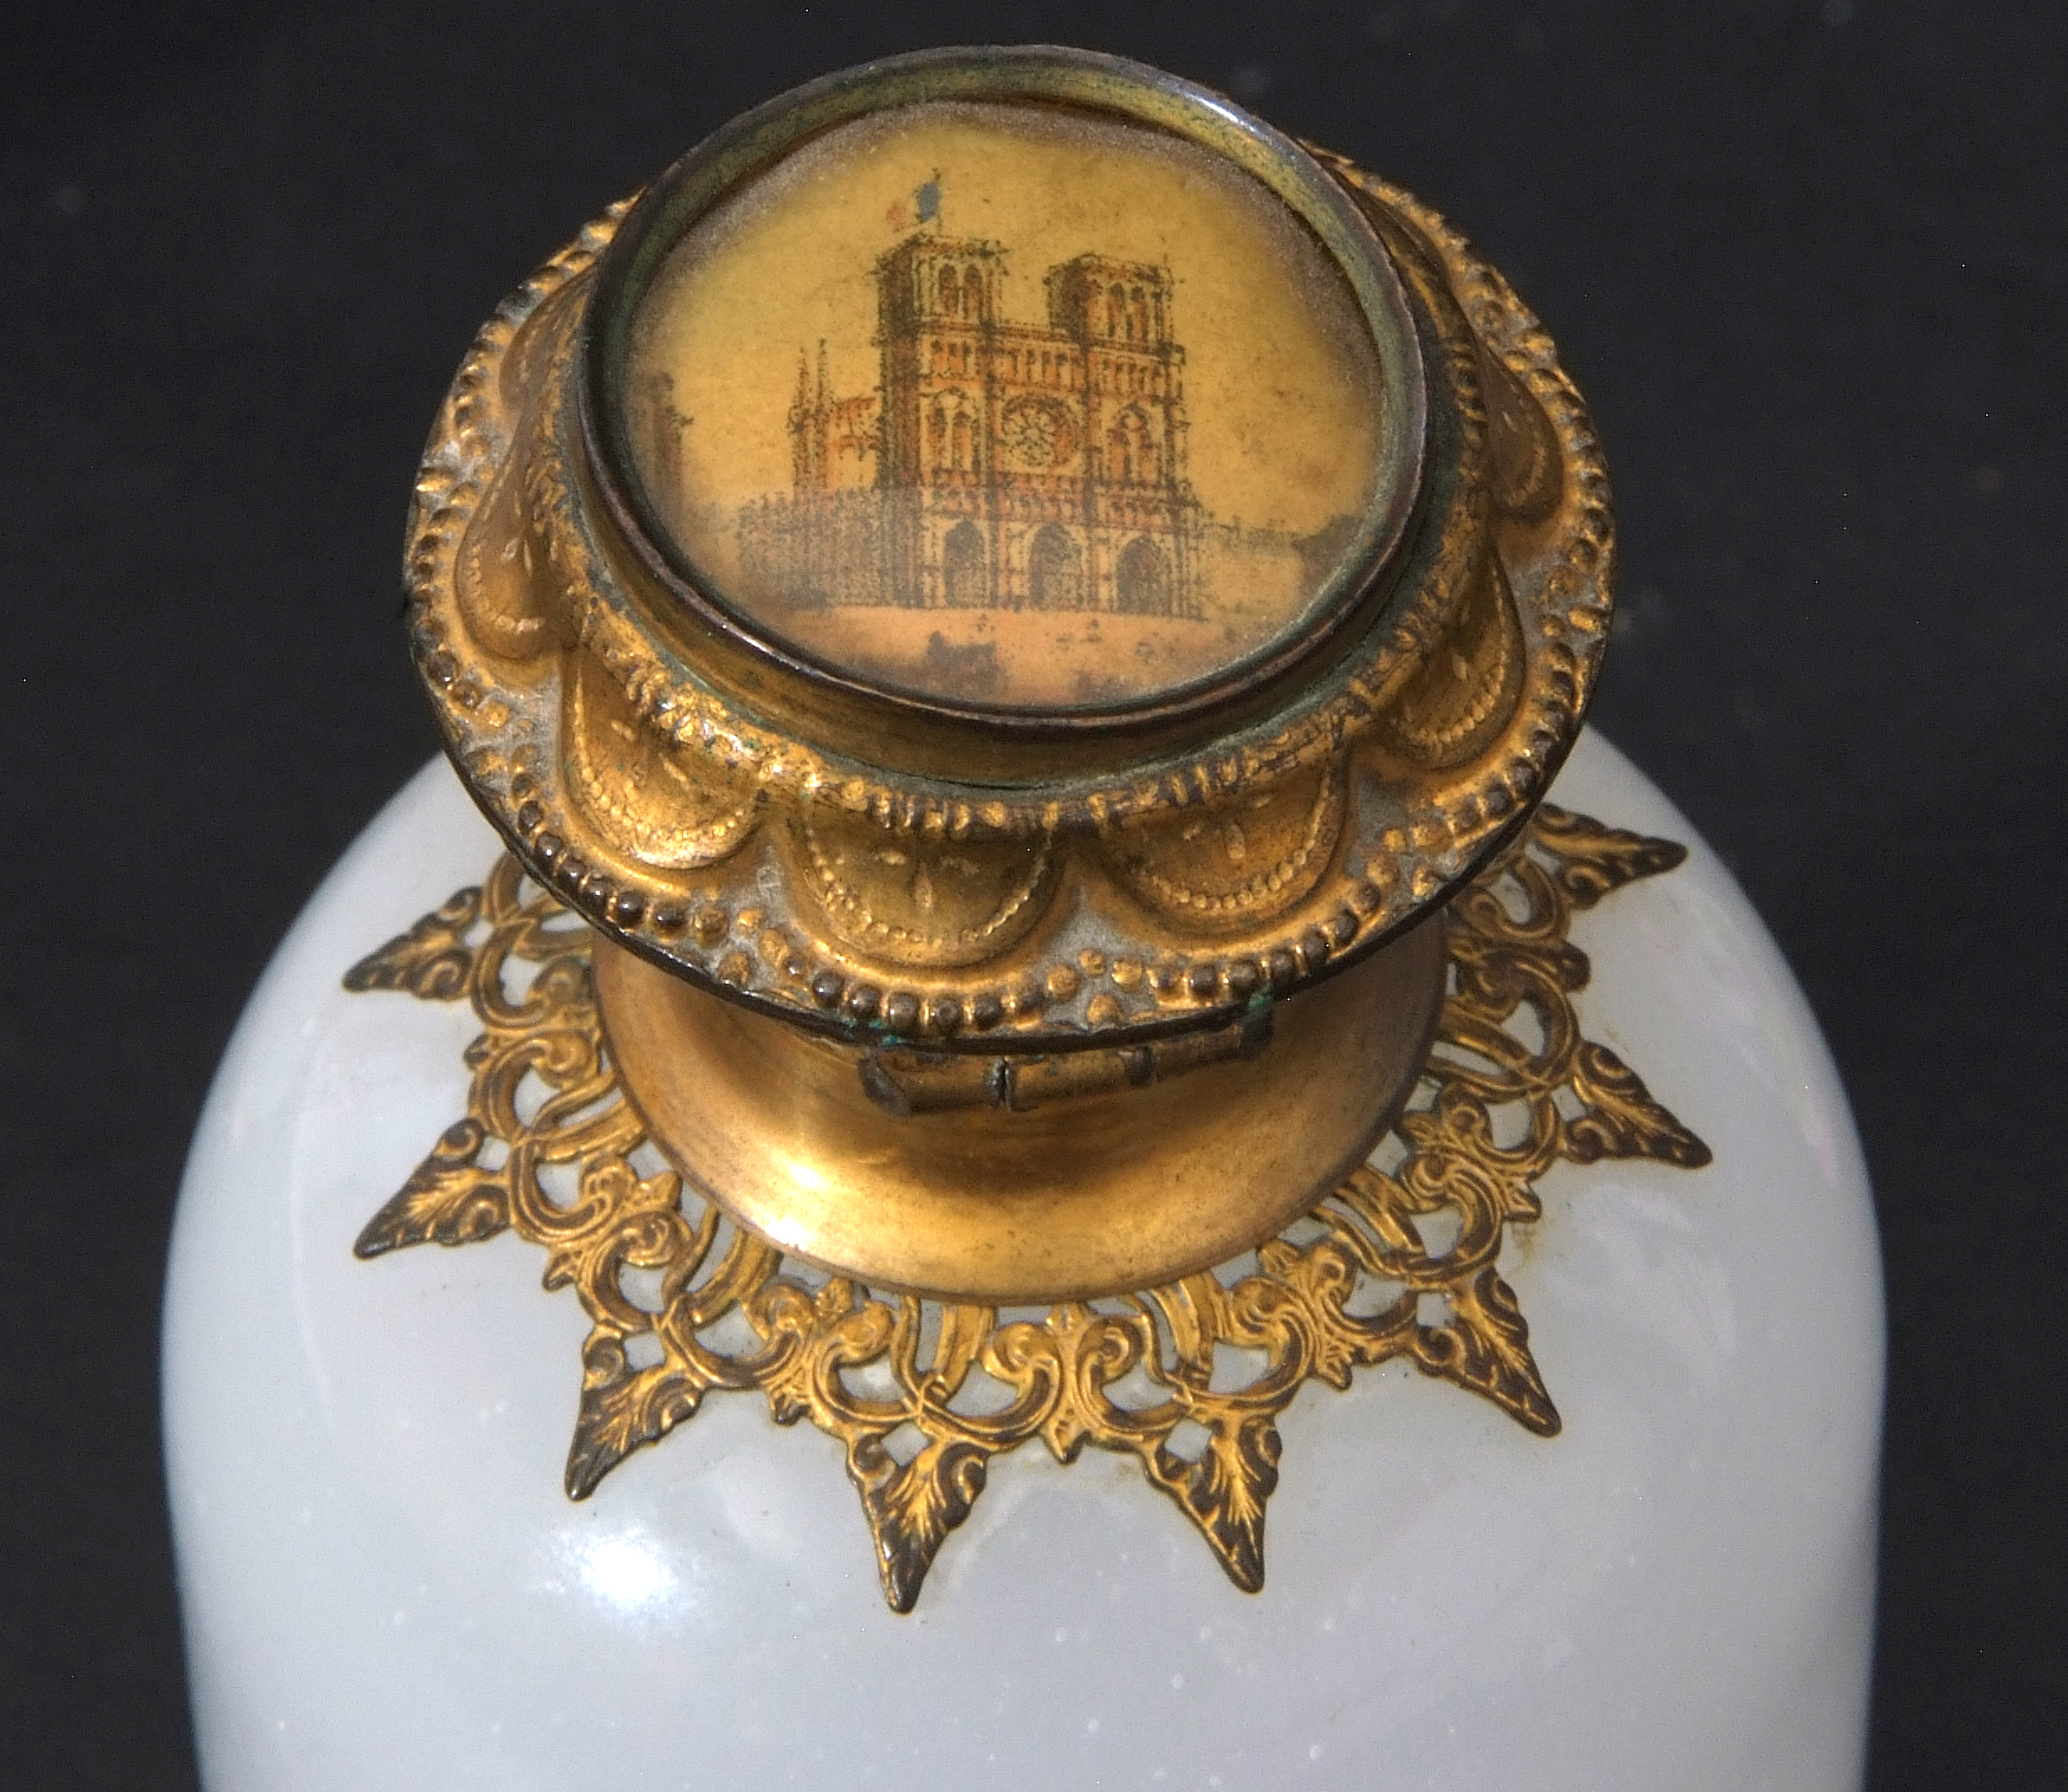 Mixed Lot: 19th century milk glass scent bottle with gilt metal hinged lid with inset to cap, a - Image 8 of 12